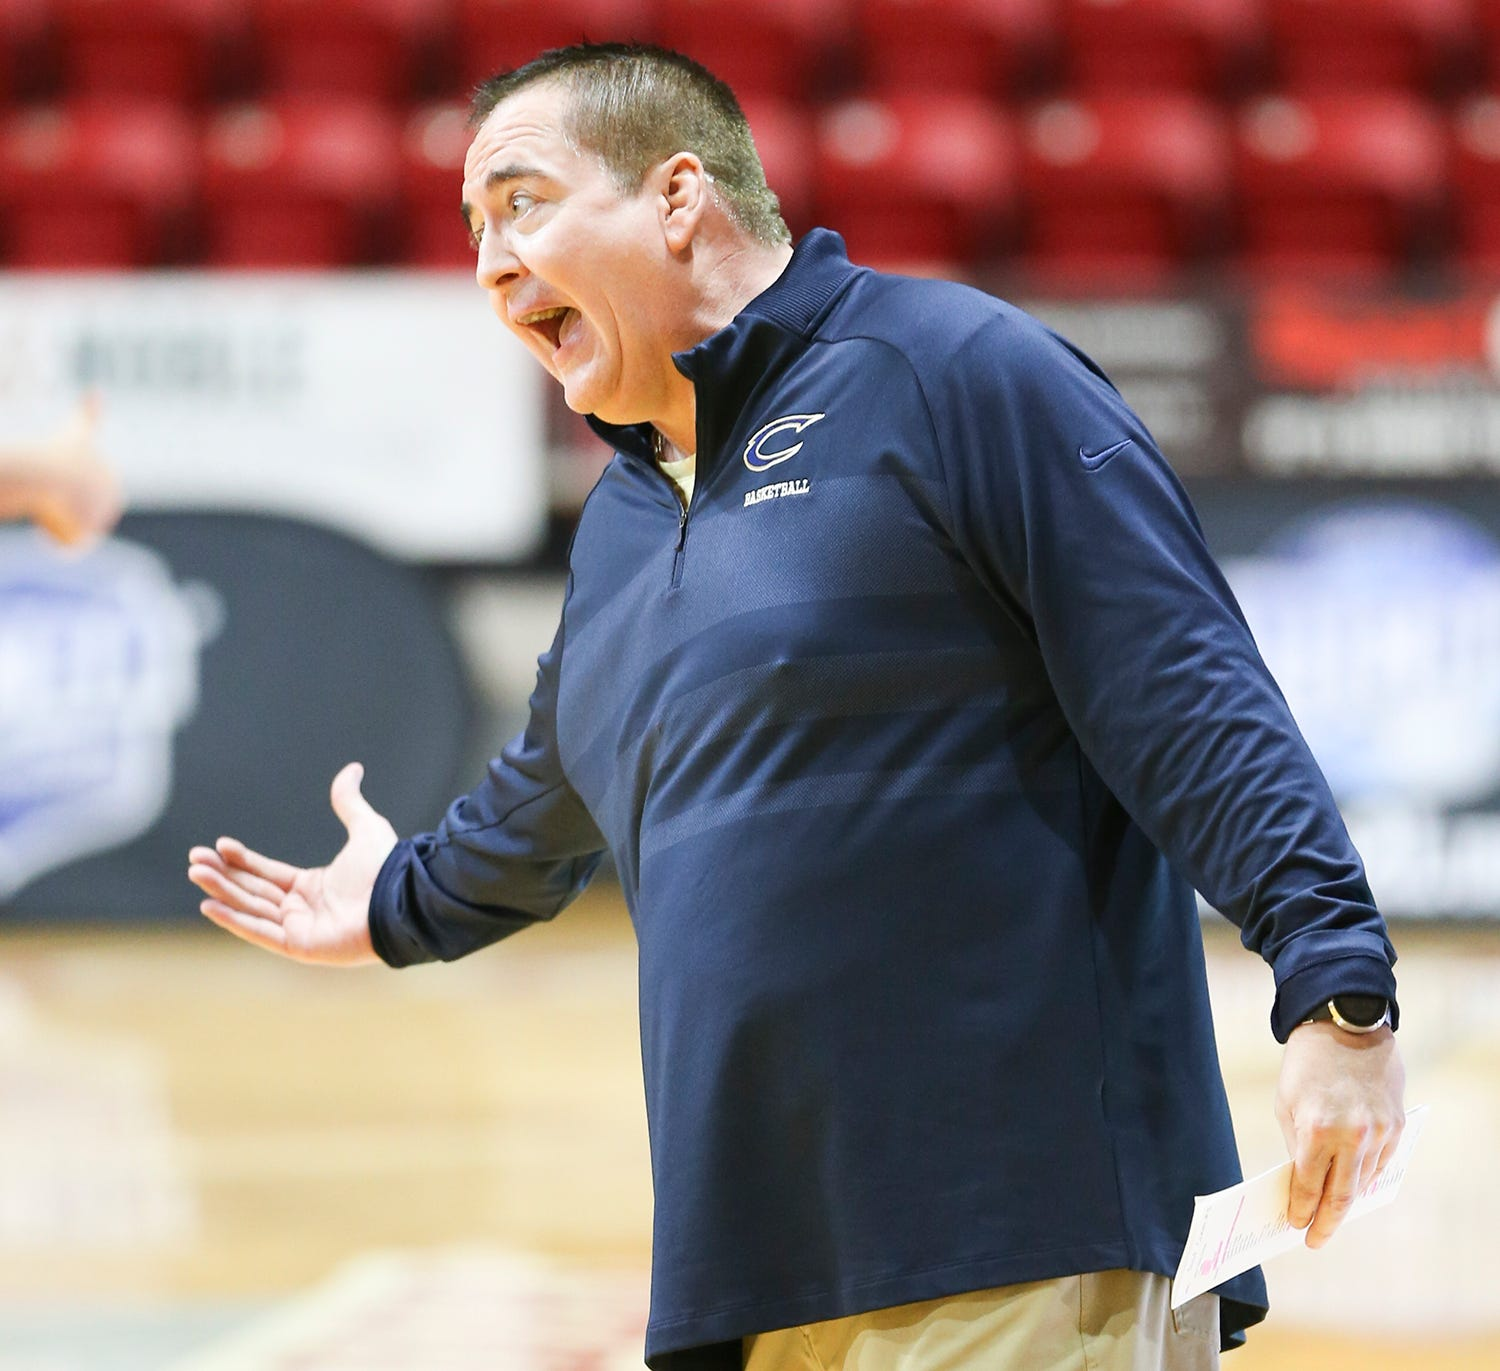 Chipola coach Donnie Tyndall coaches his team during an FCSAA Region VIII quarterfinal game in Niceville, Florida, on Thursday, April, 8, 2021. Tyndall, the former Tennessee and Southern Miss coach,  was hired by the junior college in June.